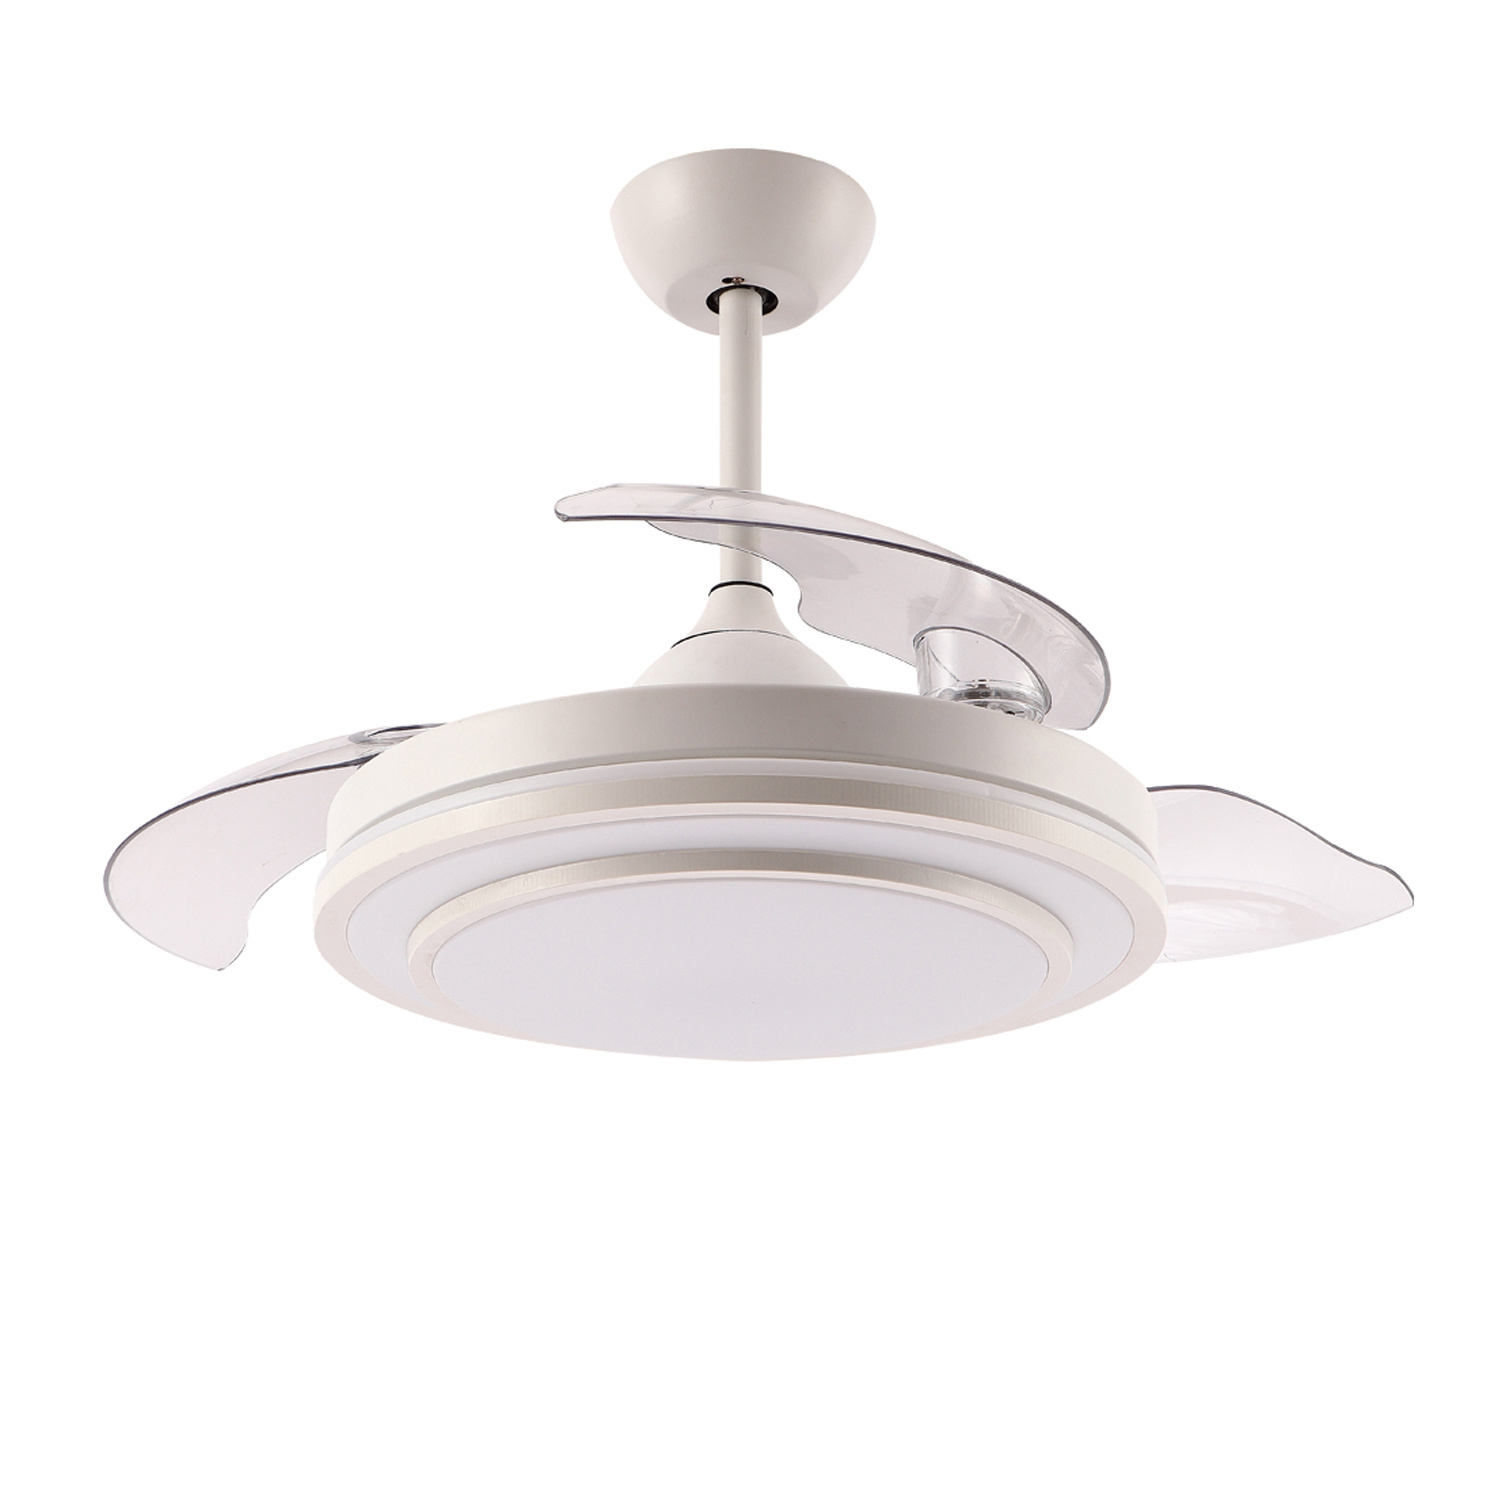 China Factory New Design Retractable Hidden Blades Ceiling Fan With Led Light And Remote Control Dc Pure Copper Fan China High Lumen Ceiling Fan And Retractable Ceiling Fan Light Price